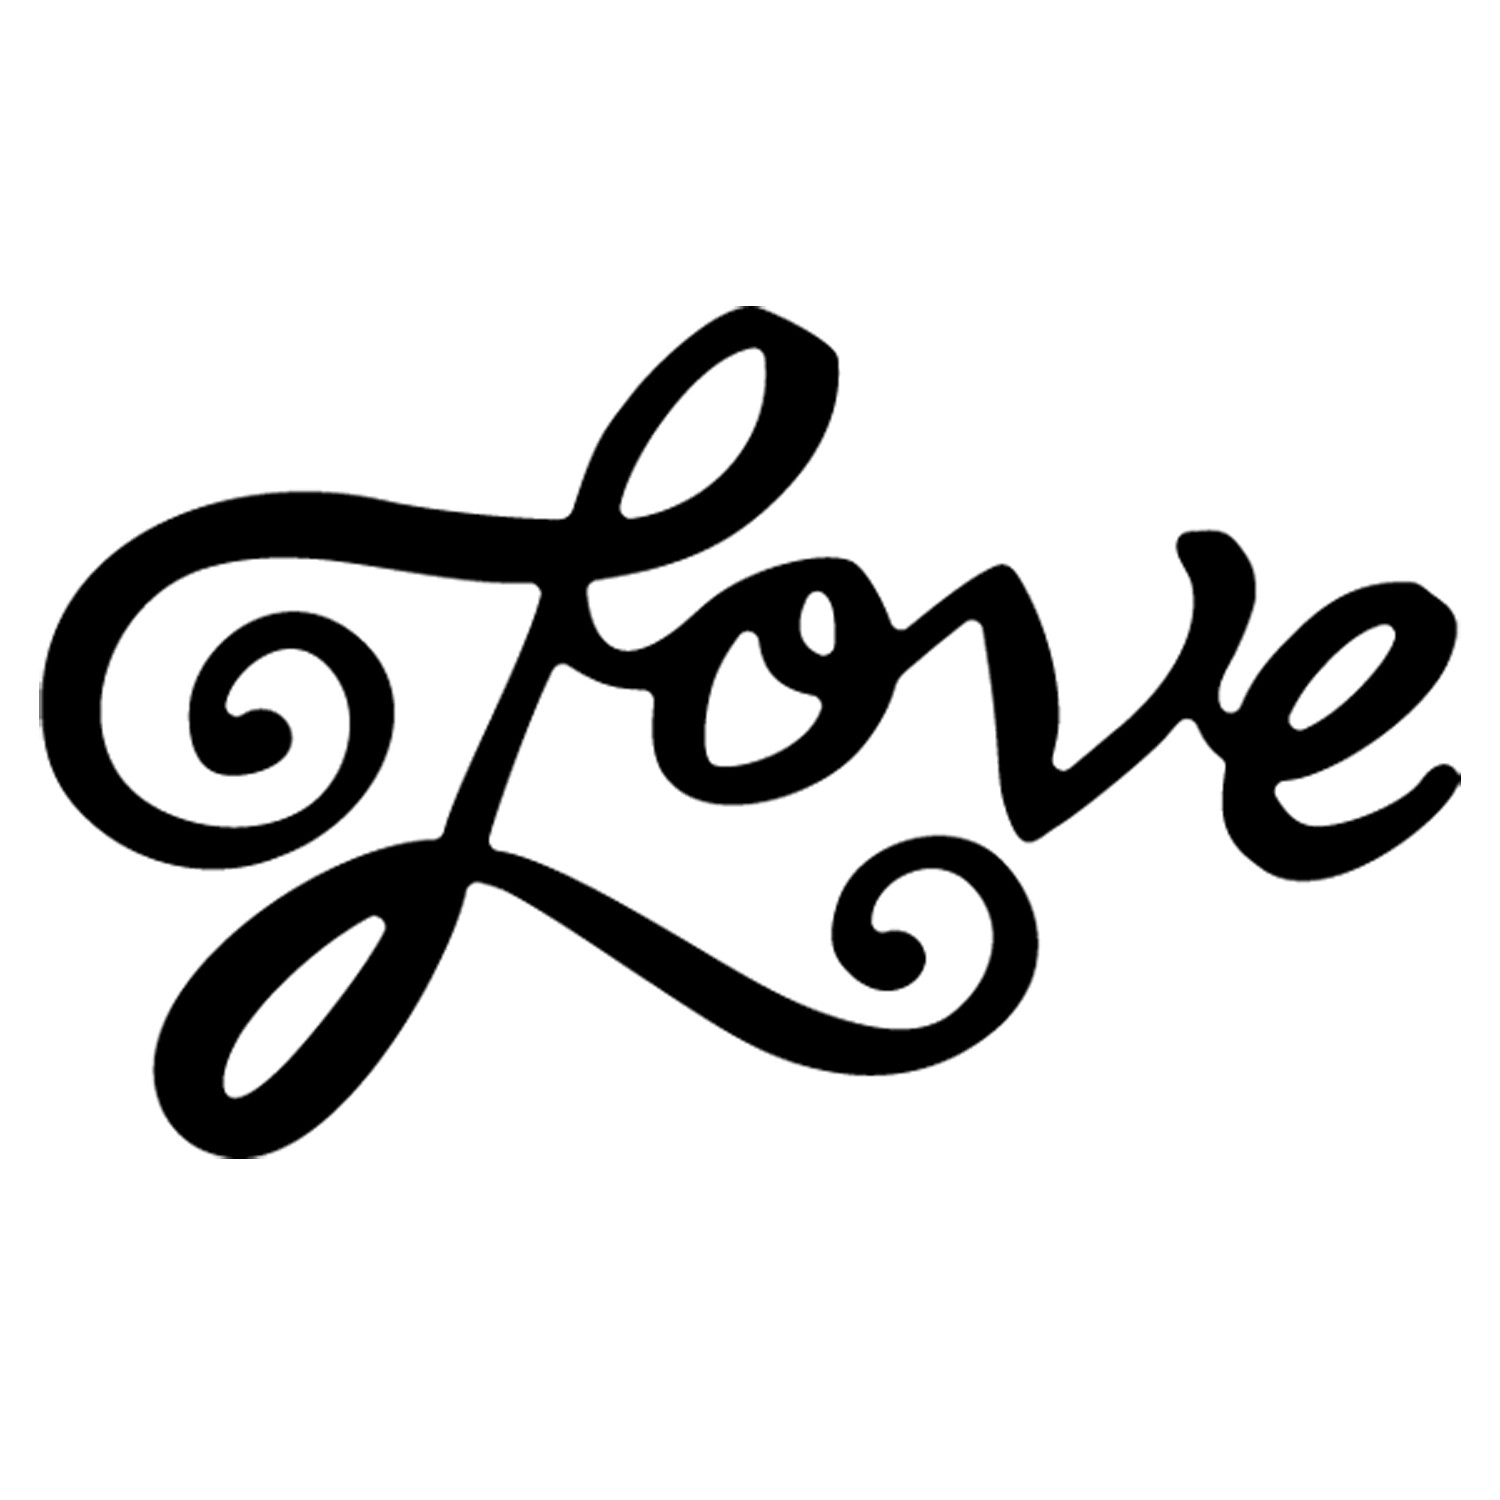 Spelling clipart cursive. The word love in